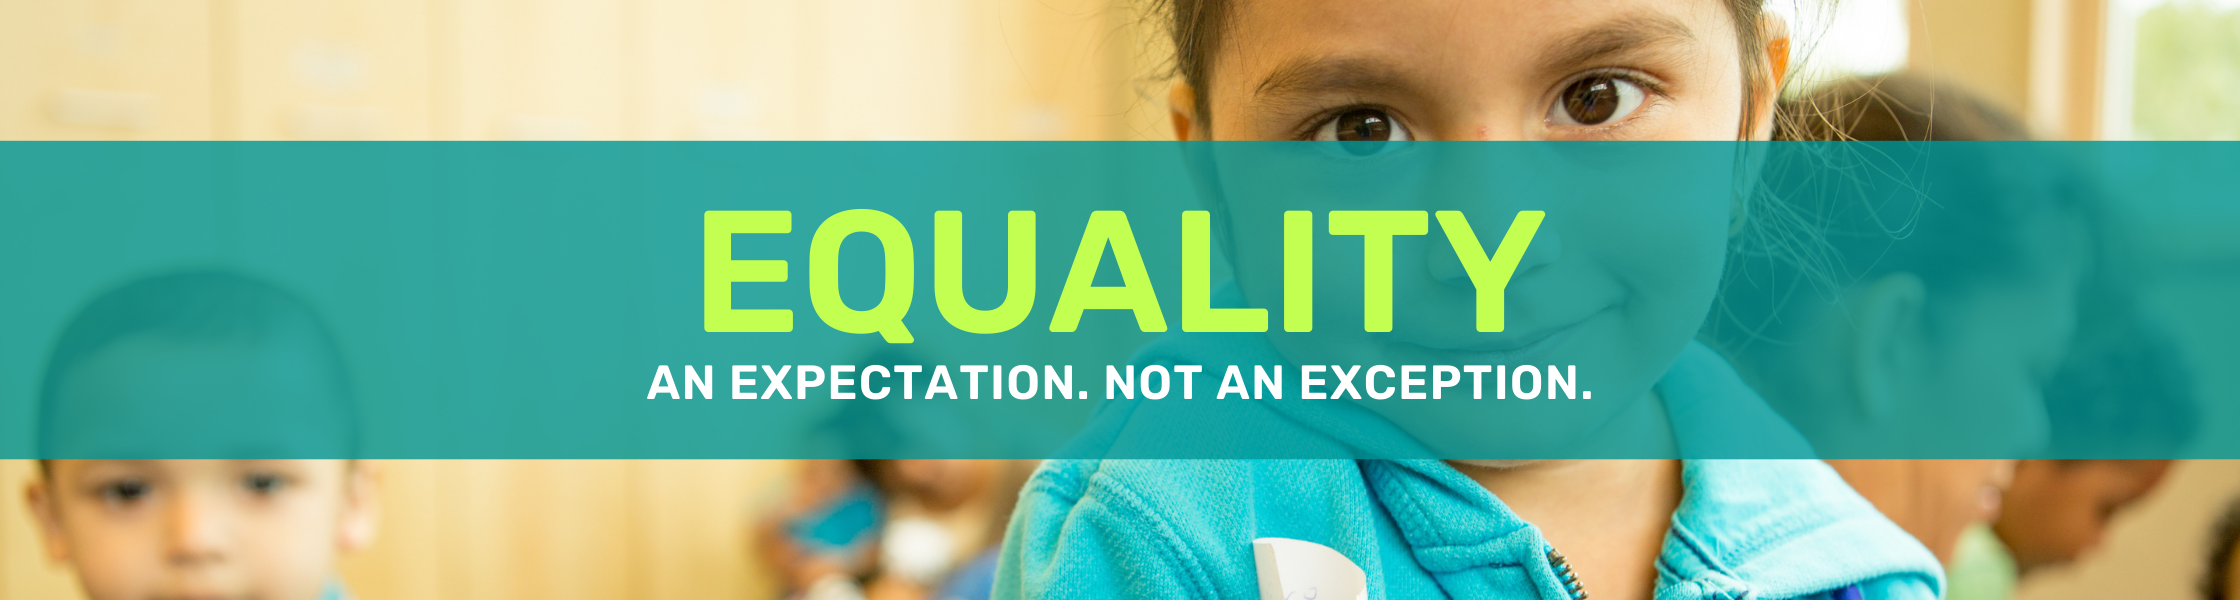 Equality Website Banner (Careers)